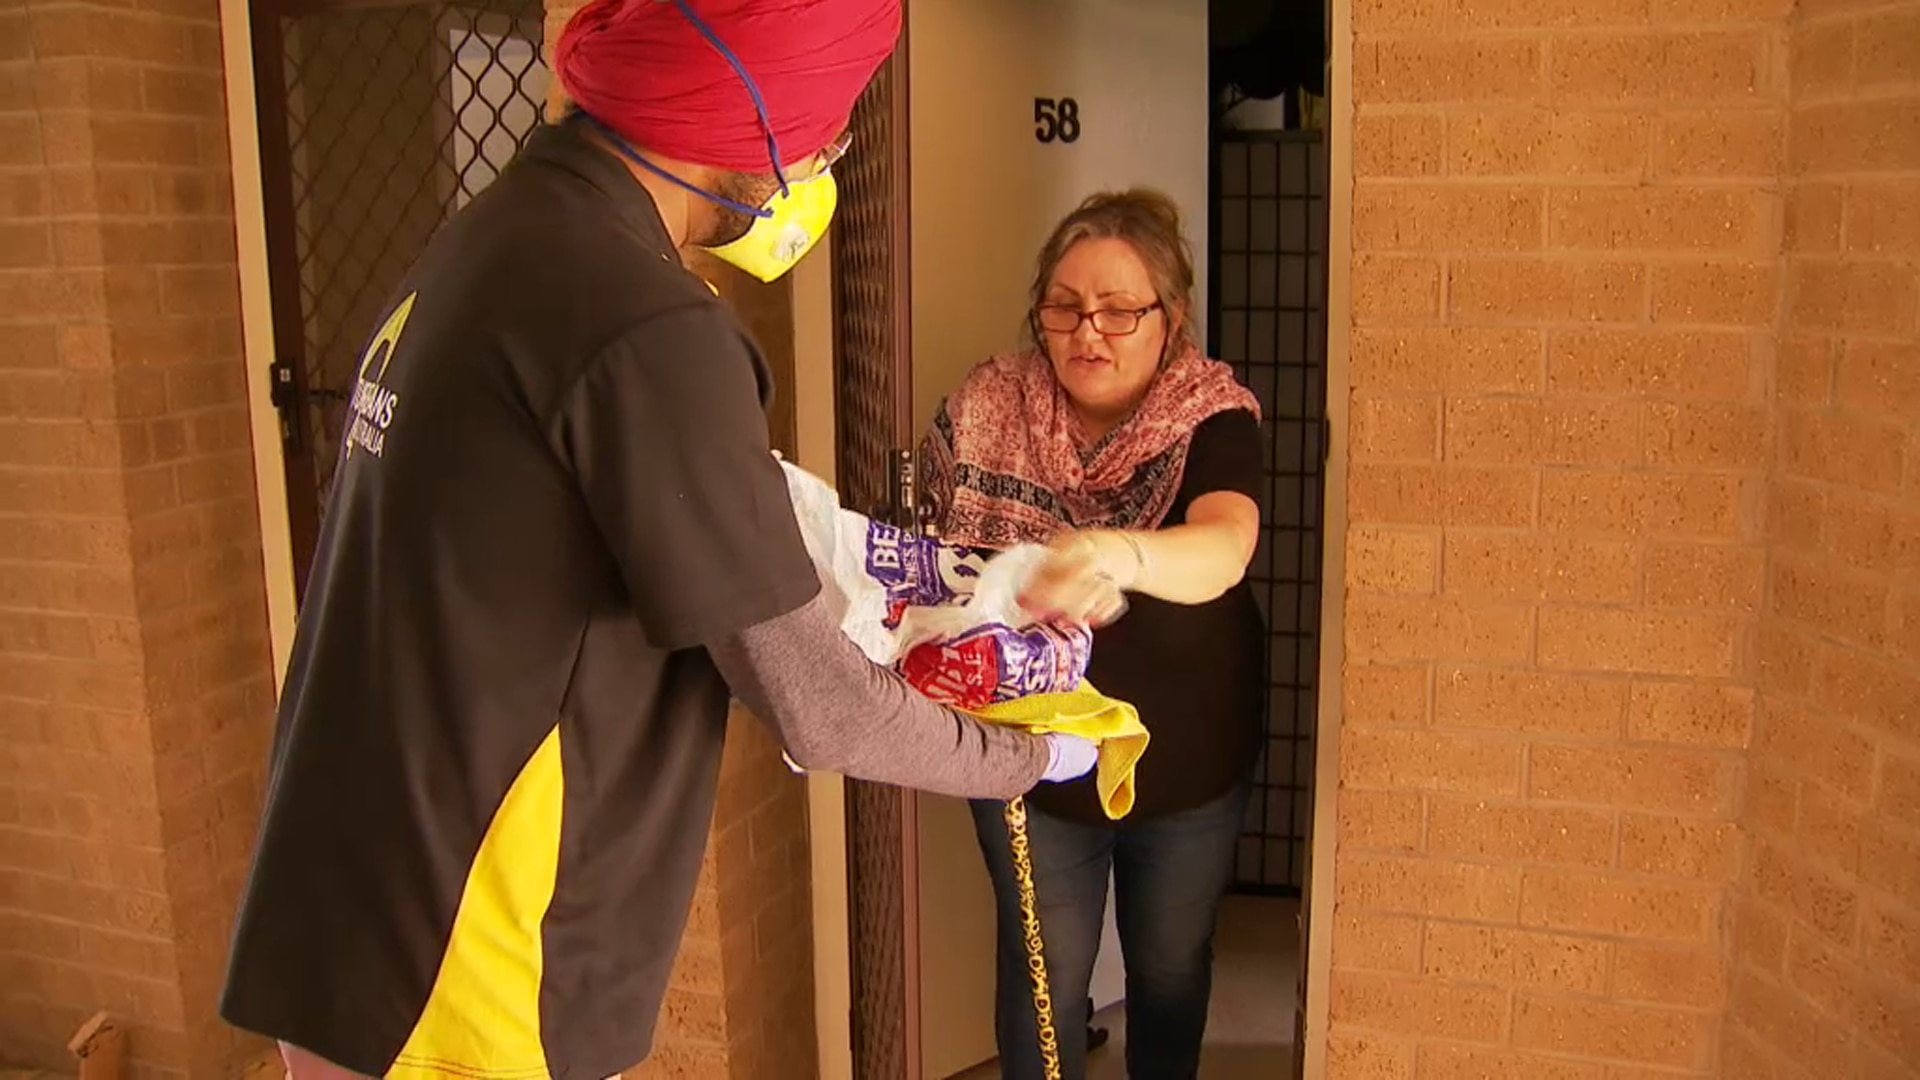 Marilouise receives her meal from Turbans 4 Australia.